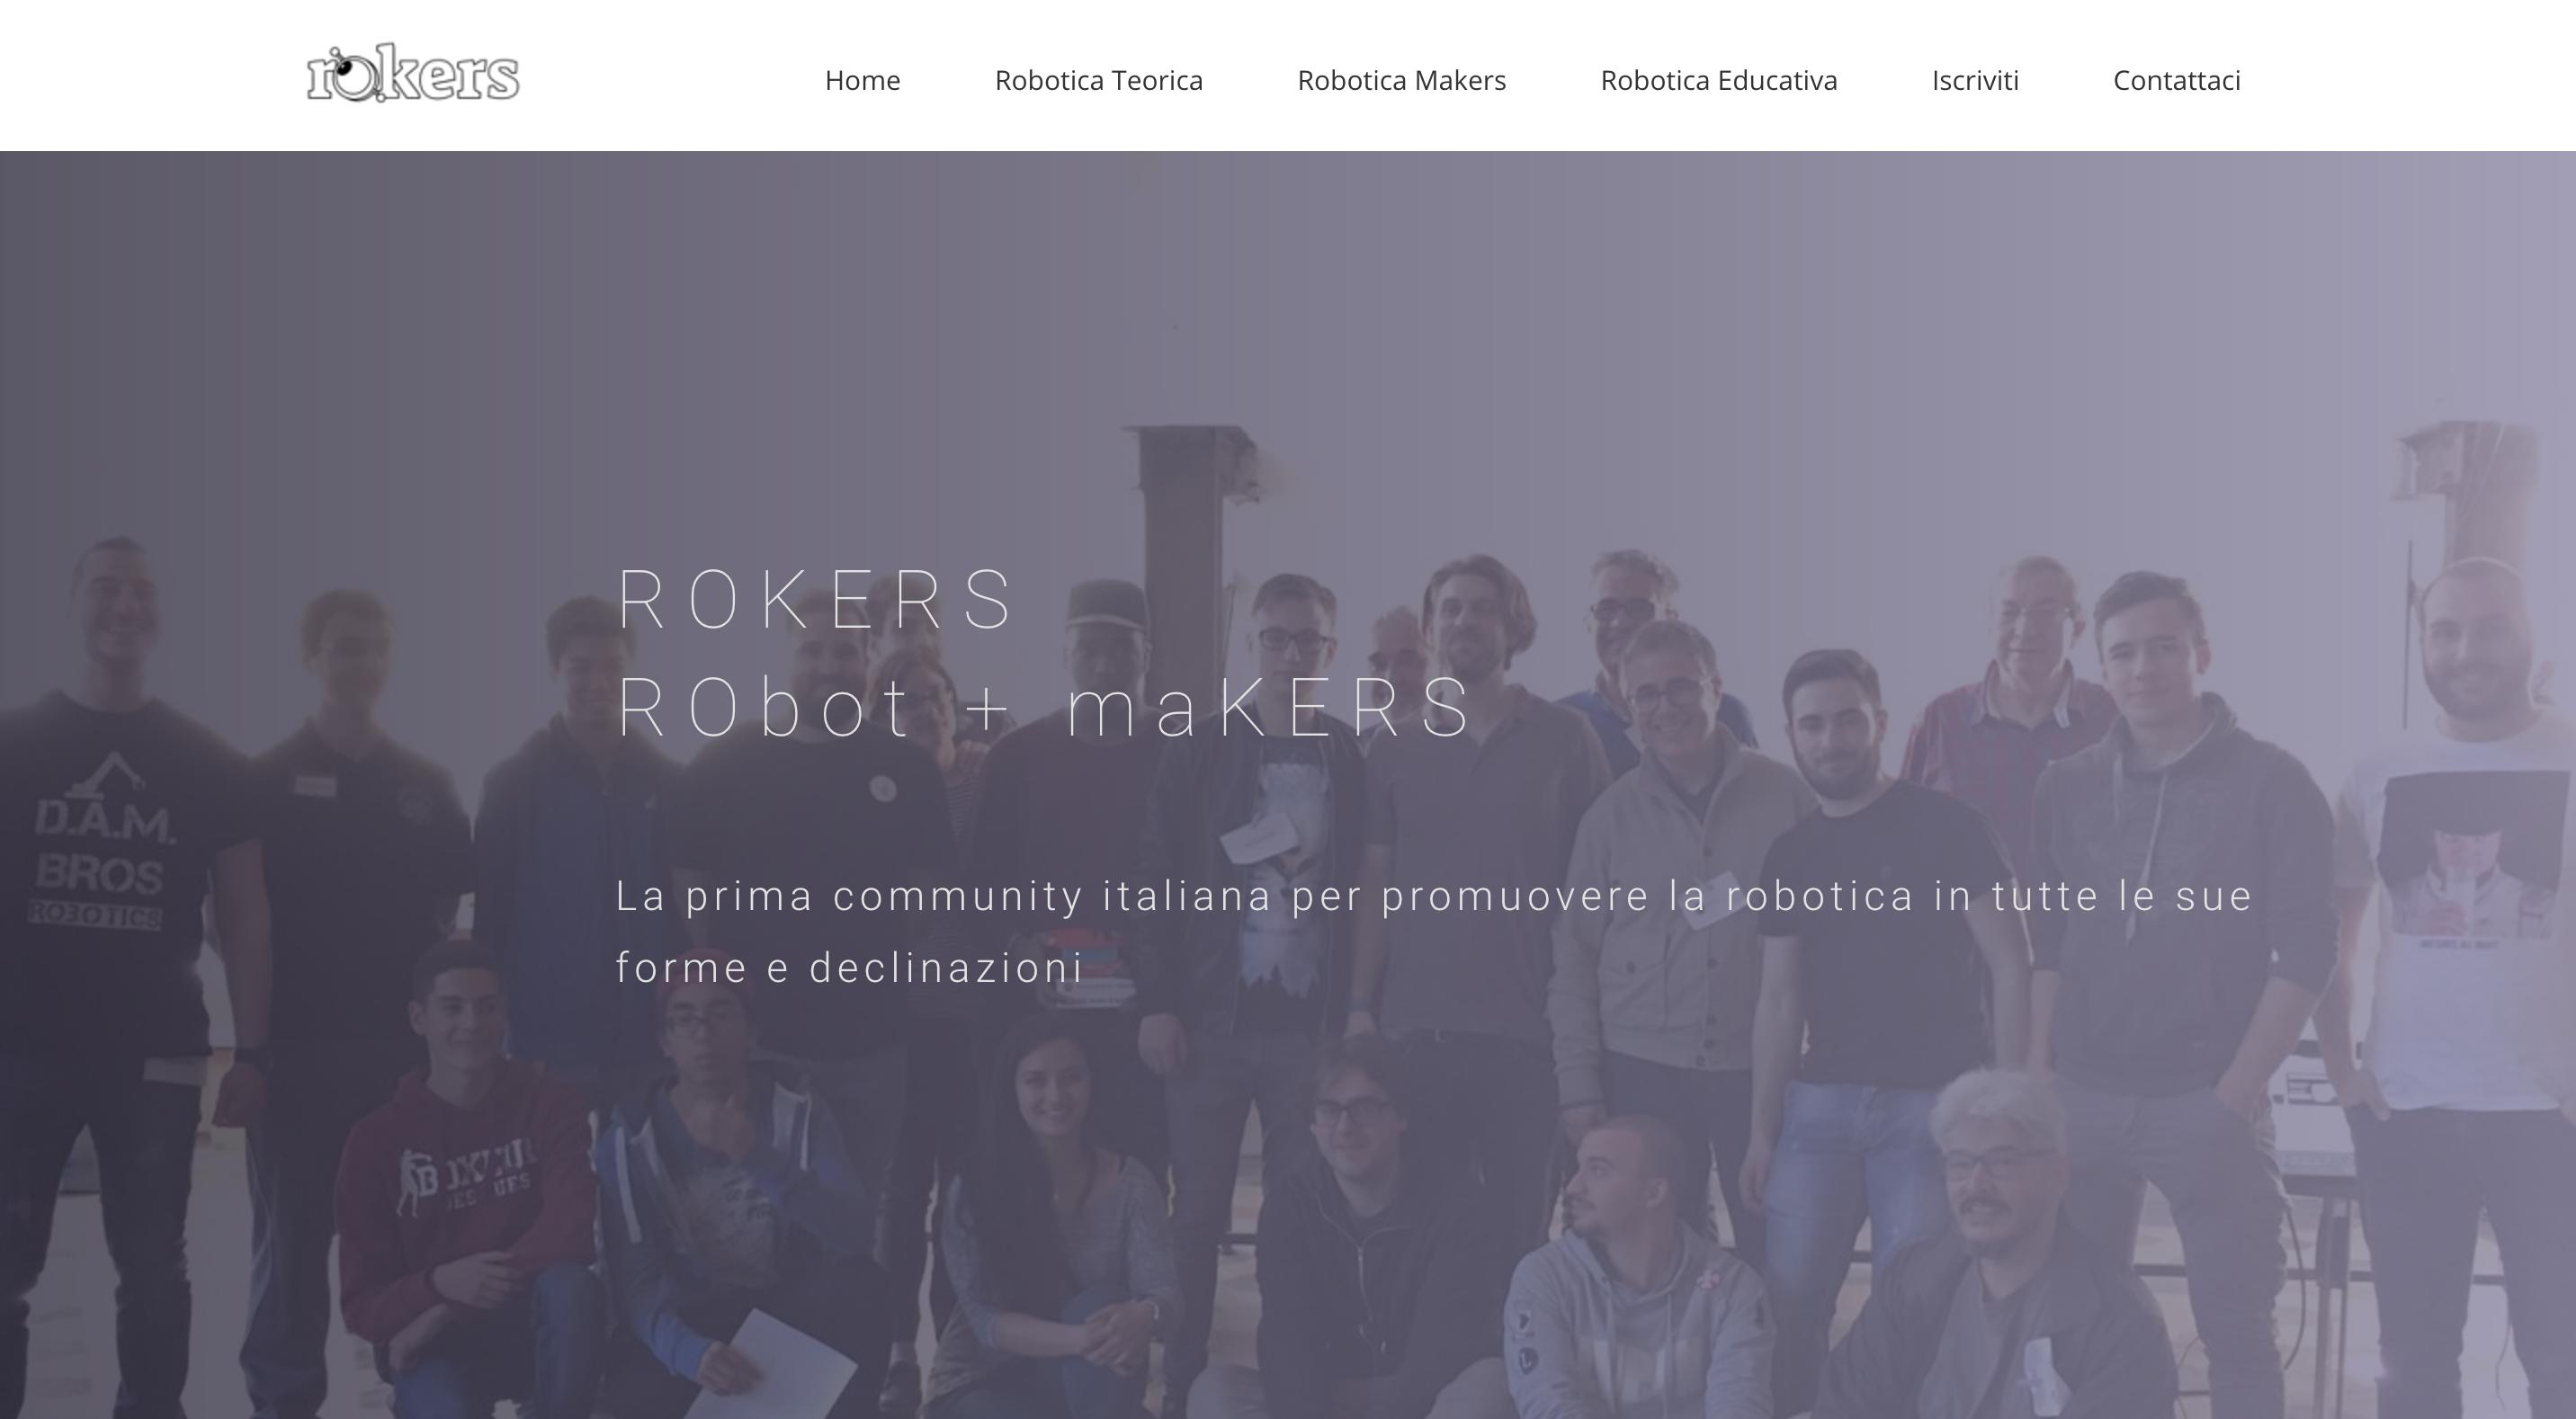 Rokers: la community di robot makers